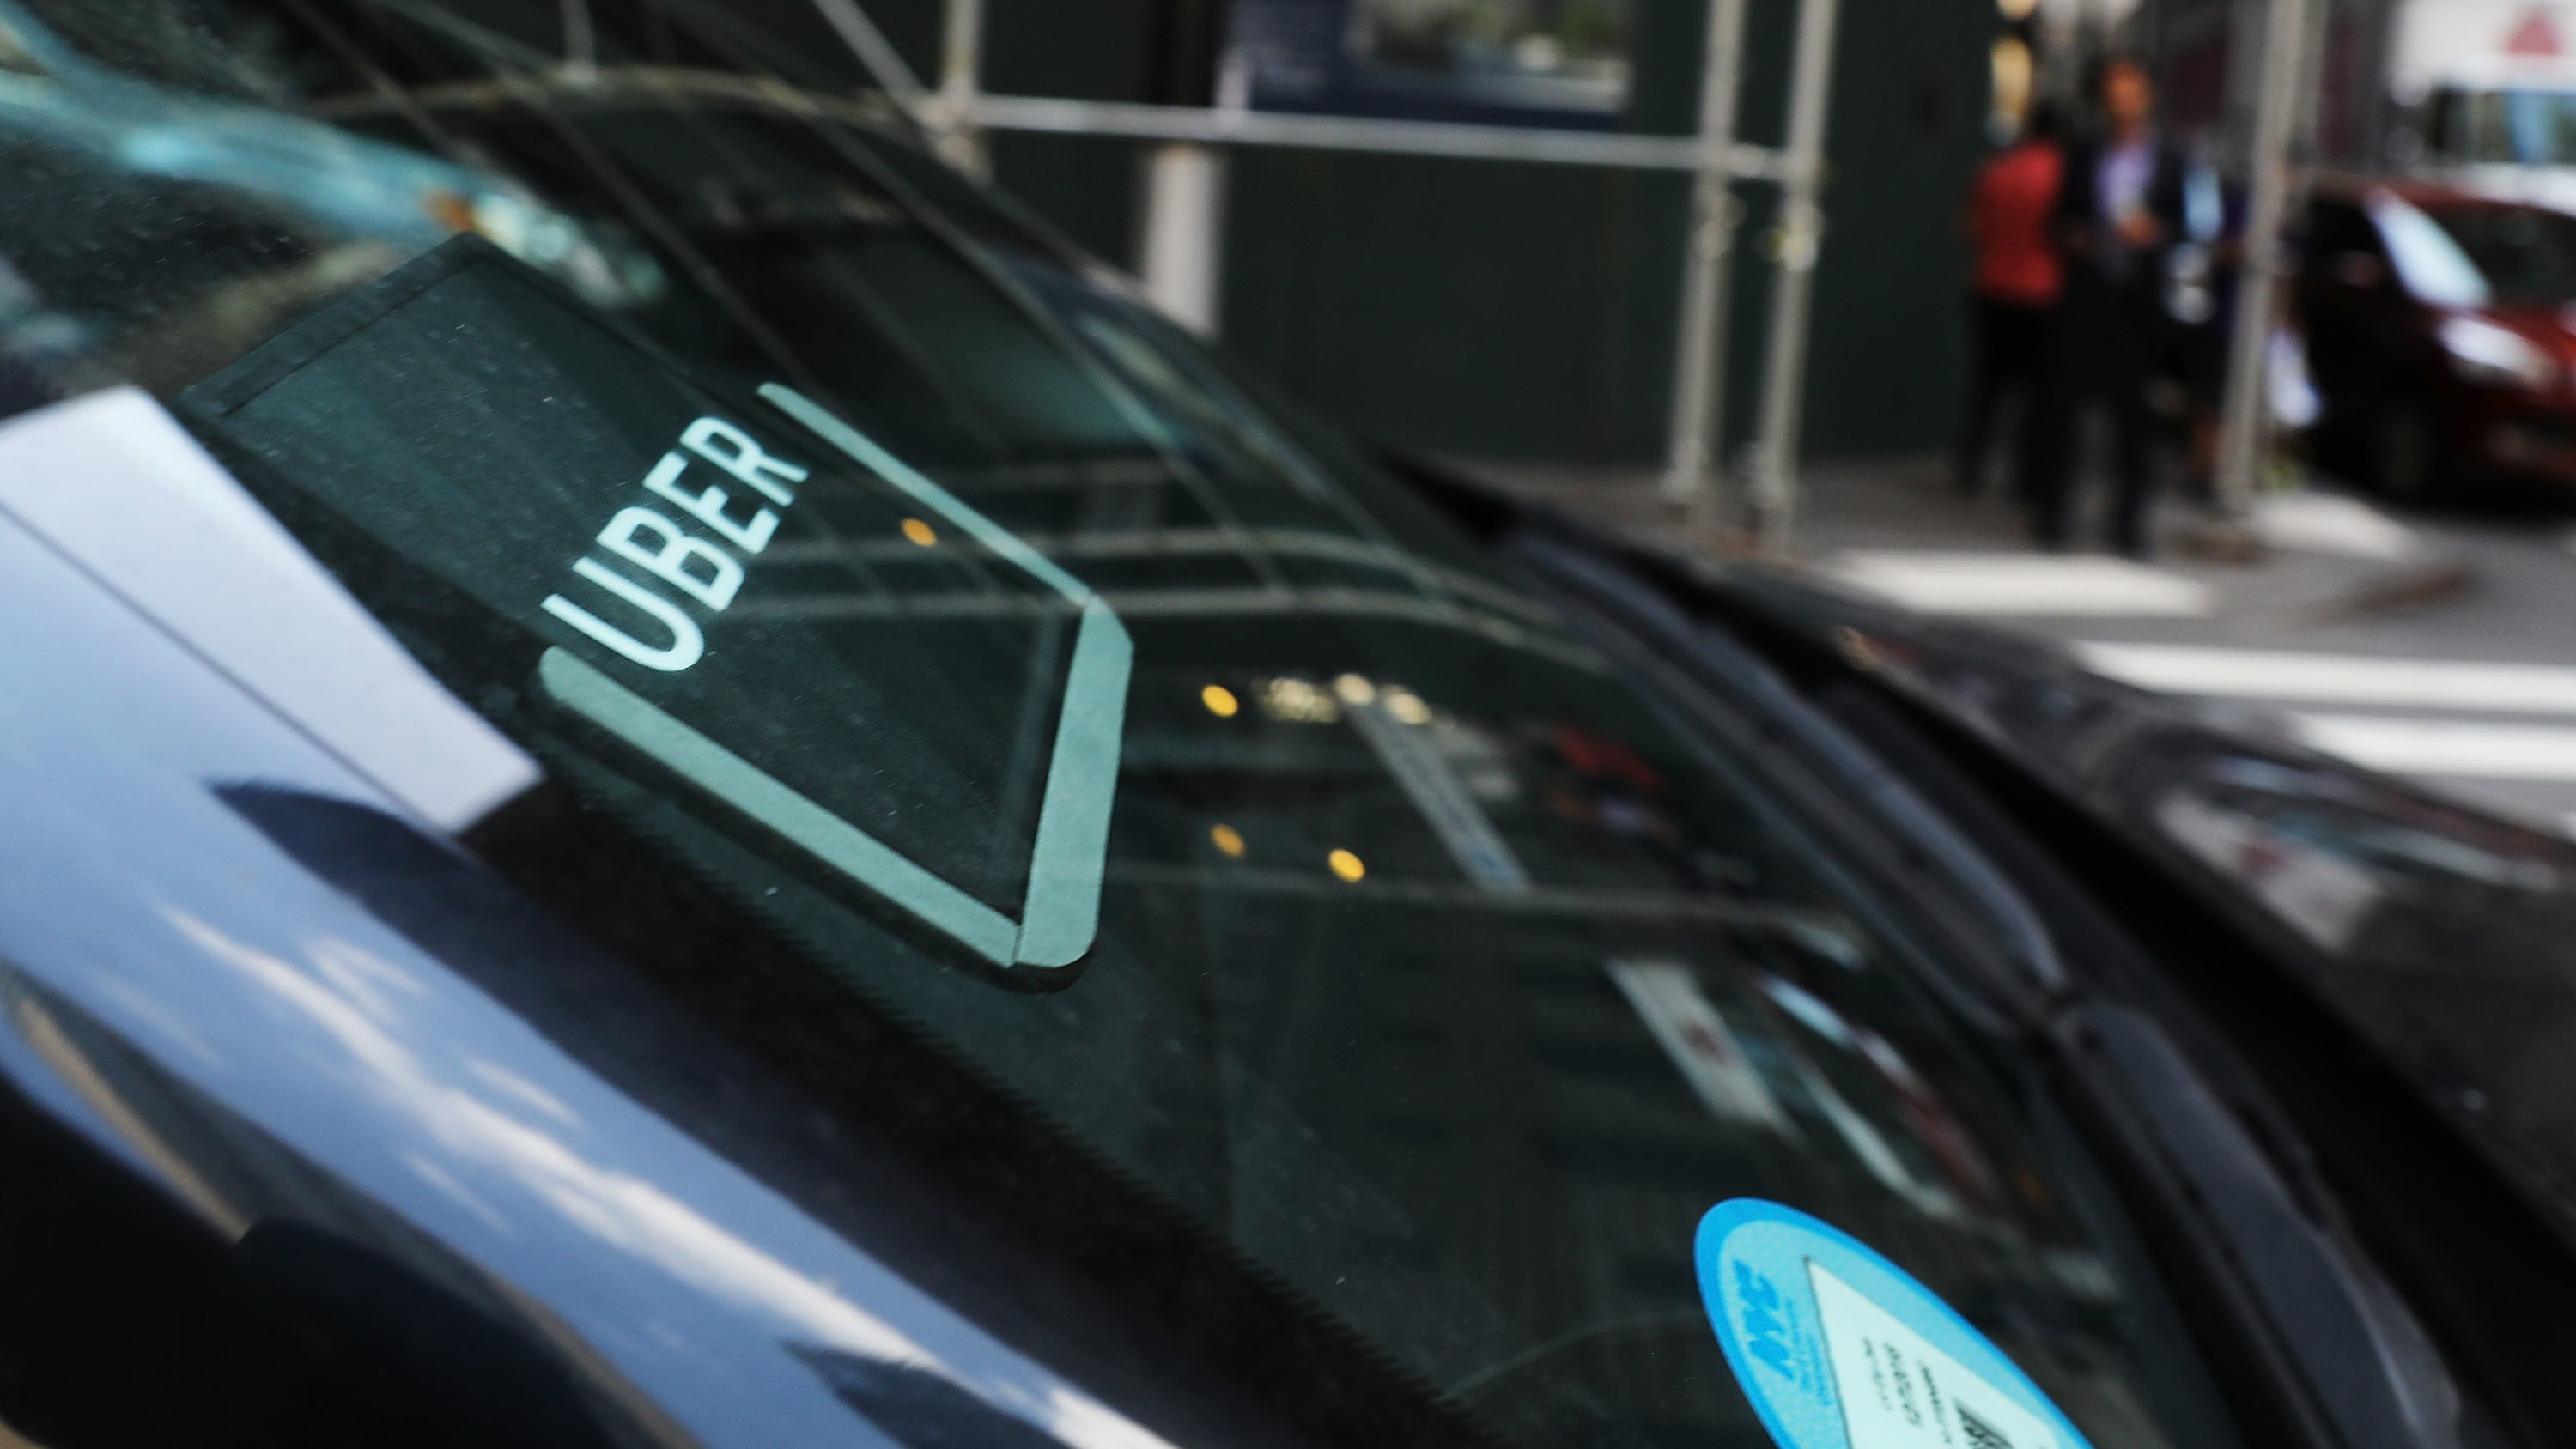 US Congress Pressures Uber For New Details On The Data Breach It Kept Secret For Over A Year